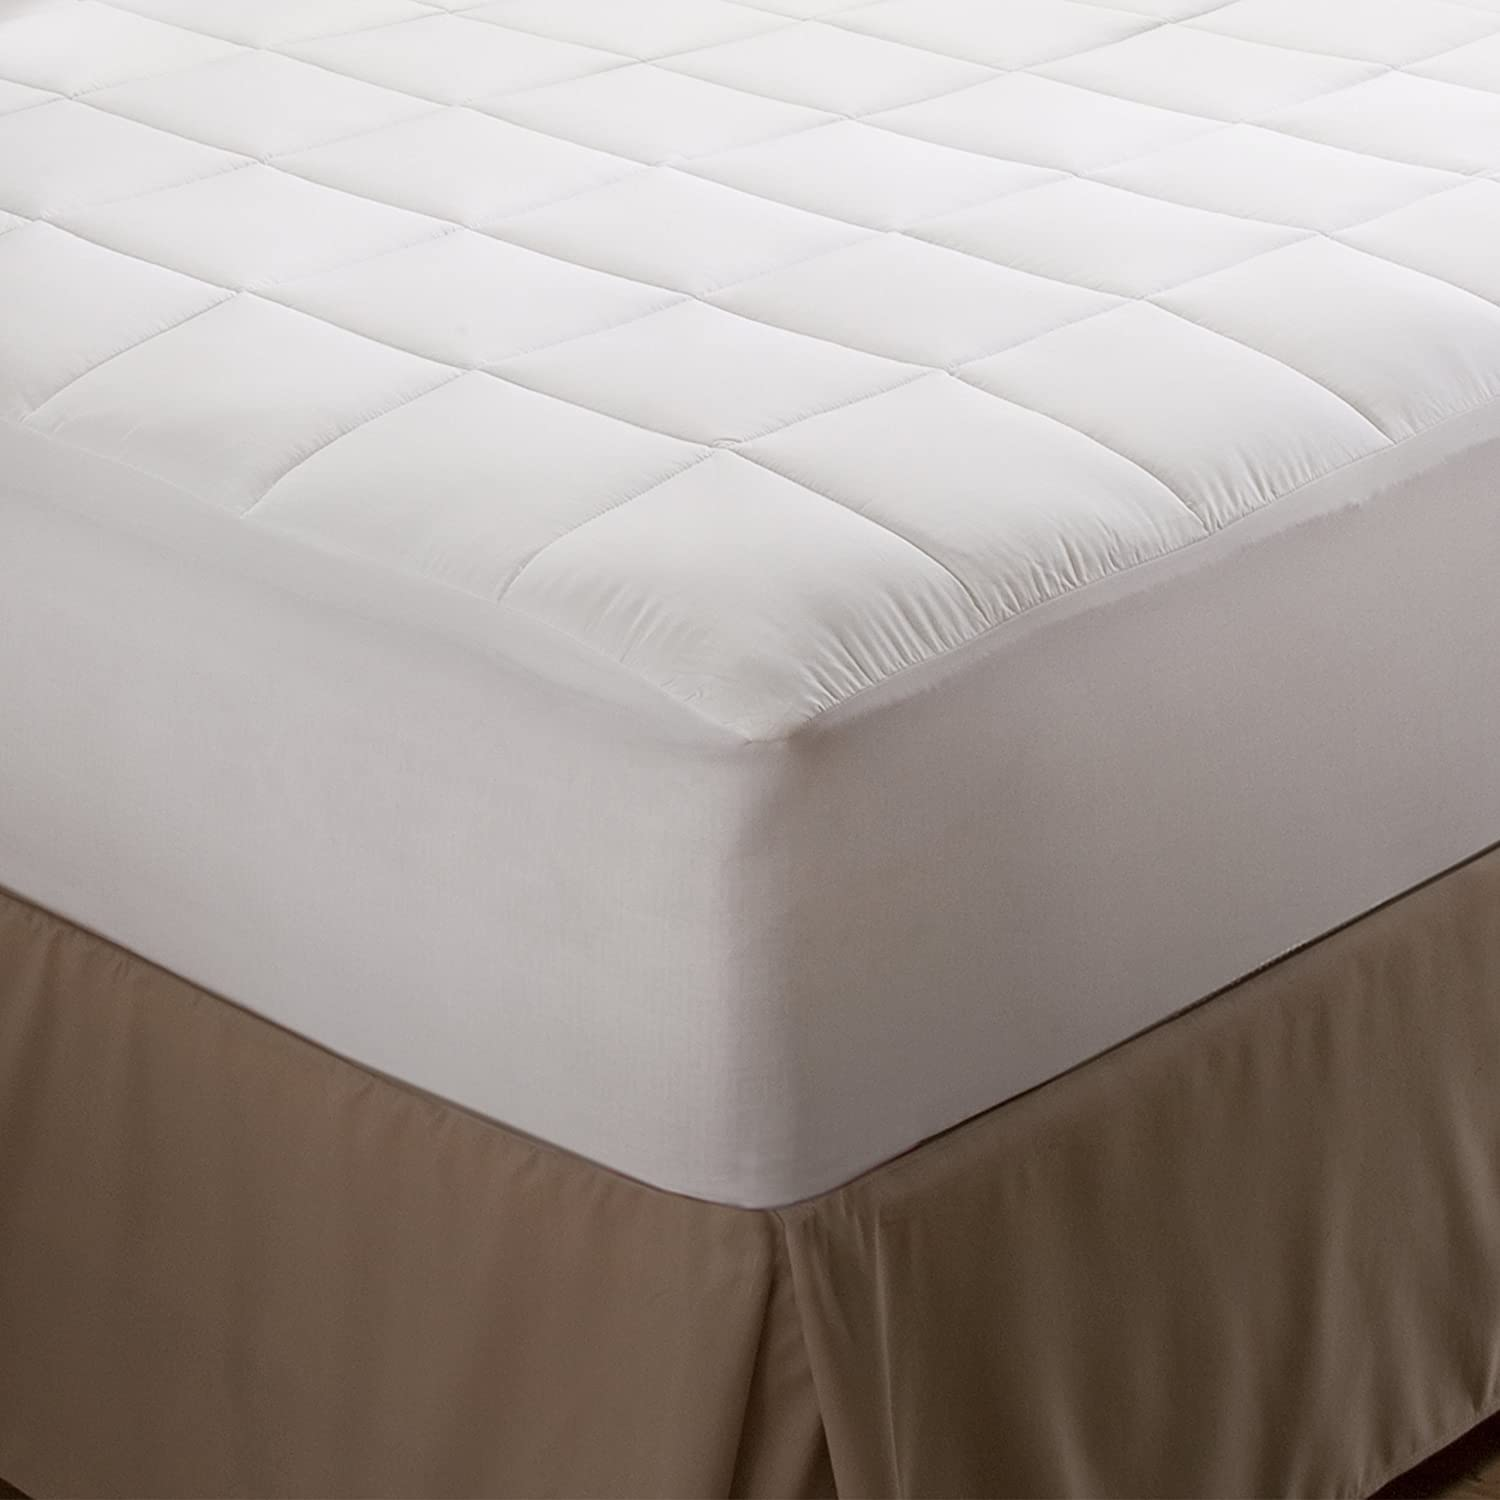 amazon com thermalsense temperature balancing mattress pad home